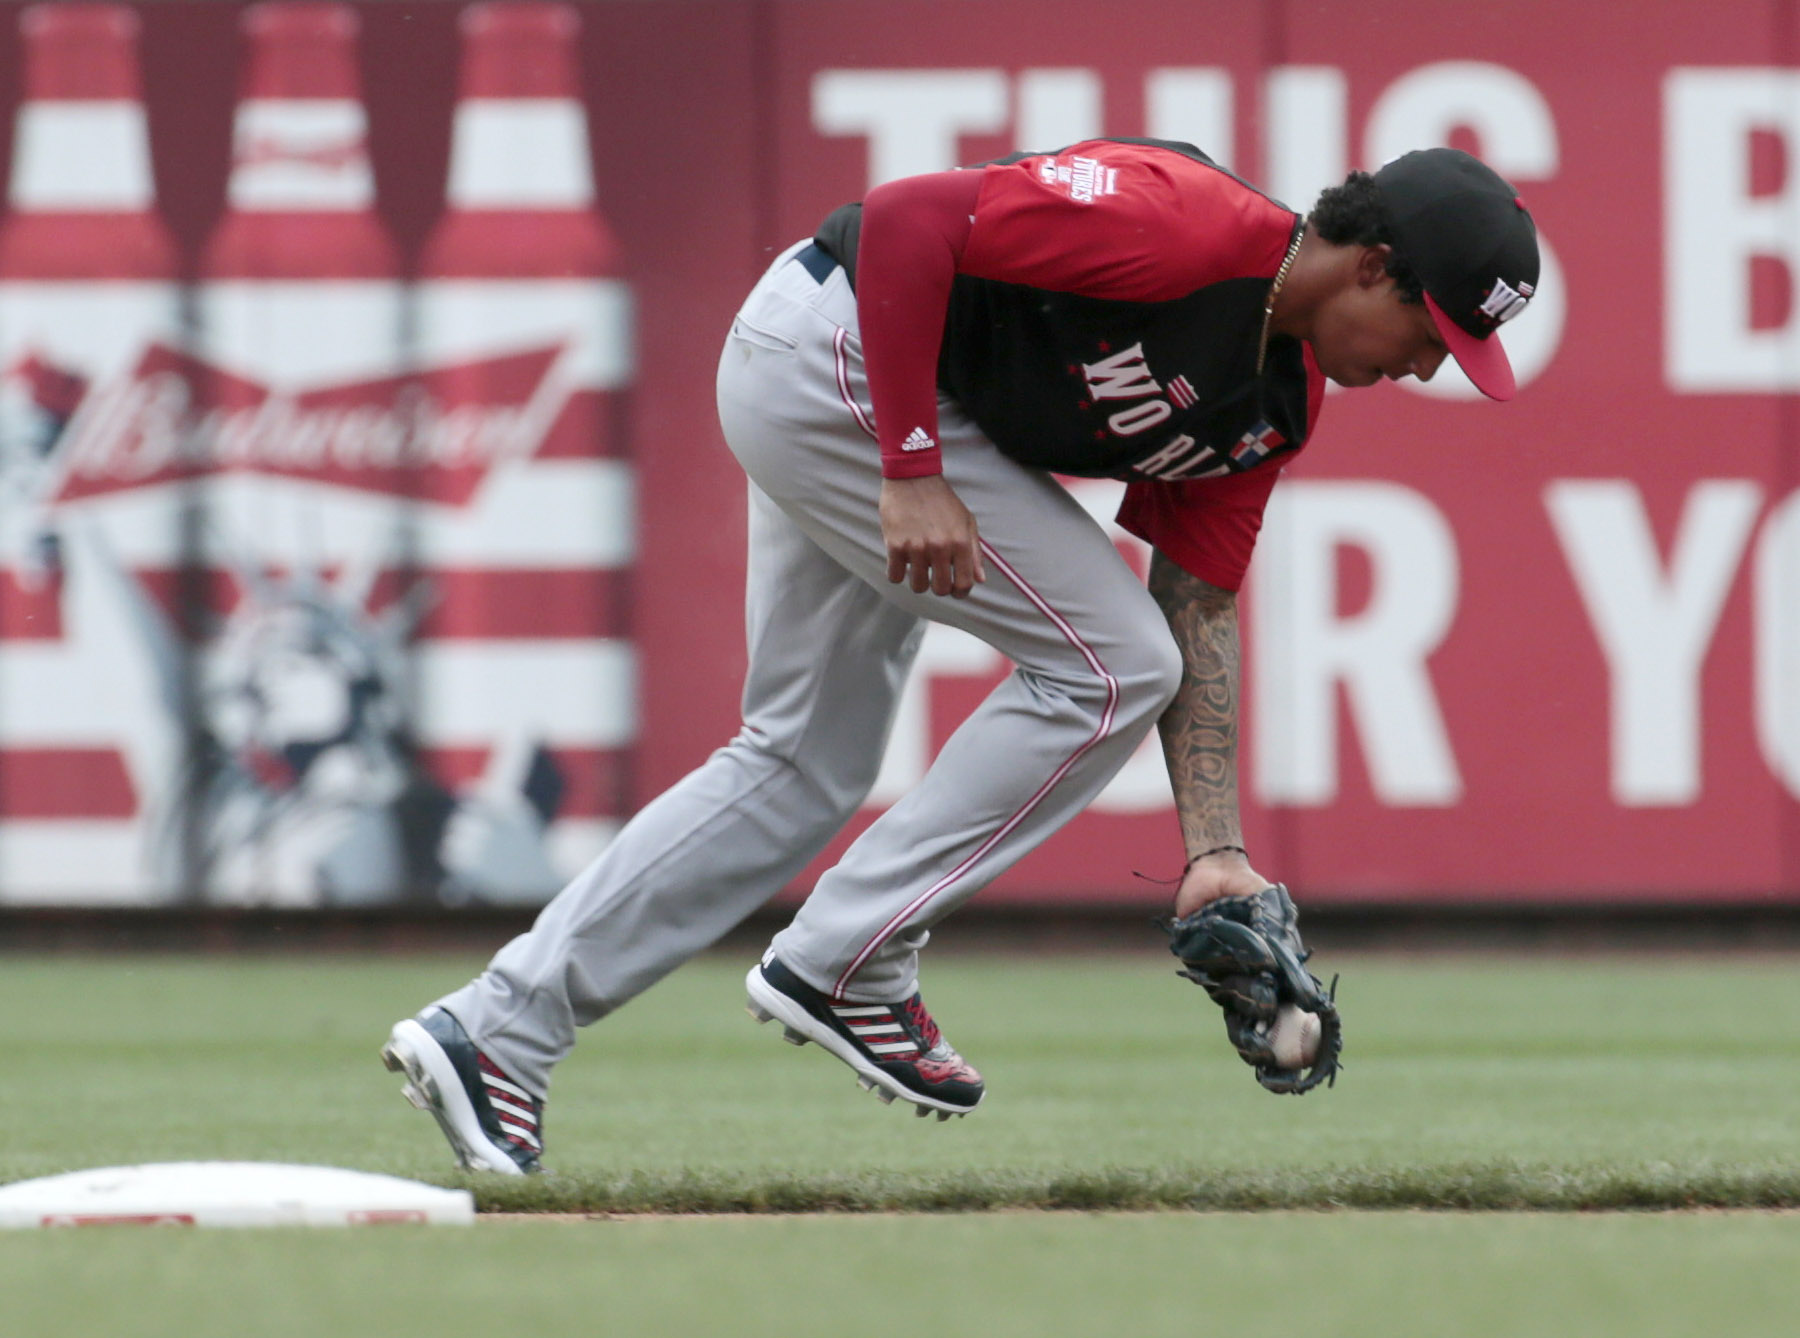 Red Sox: Could 2017 Rafael Devers be 2013 Xander Bogaerts?